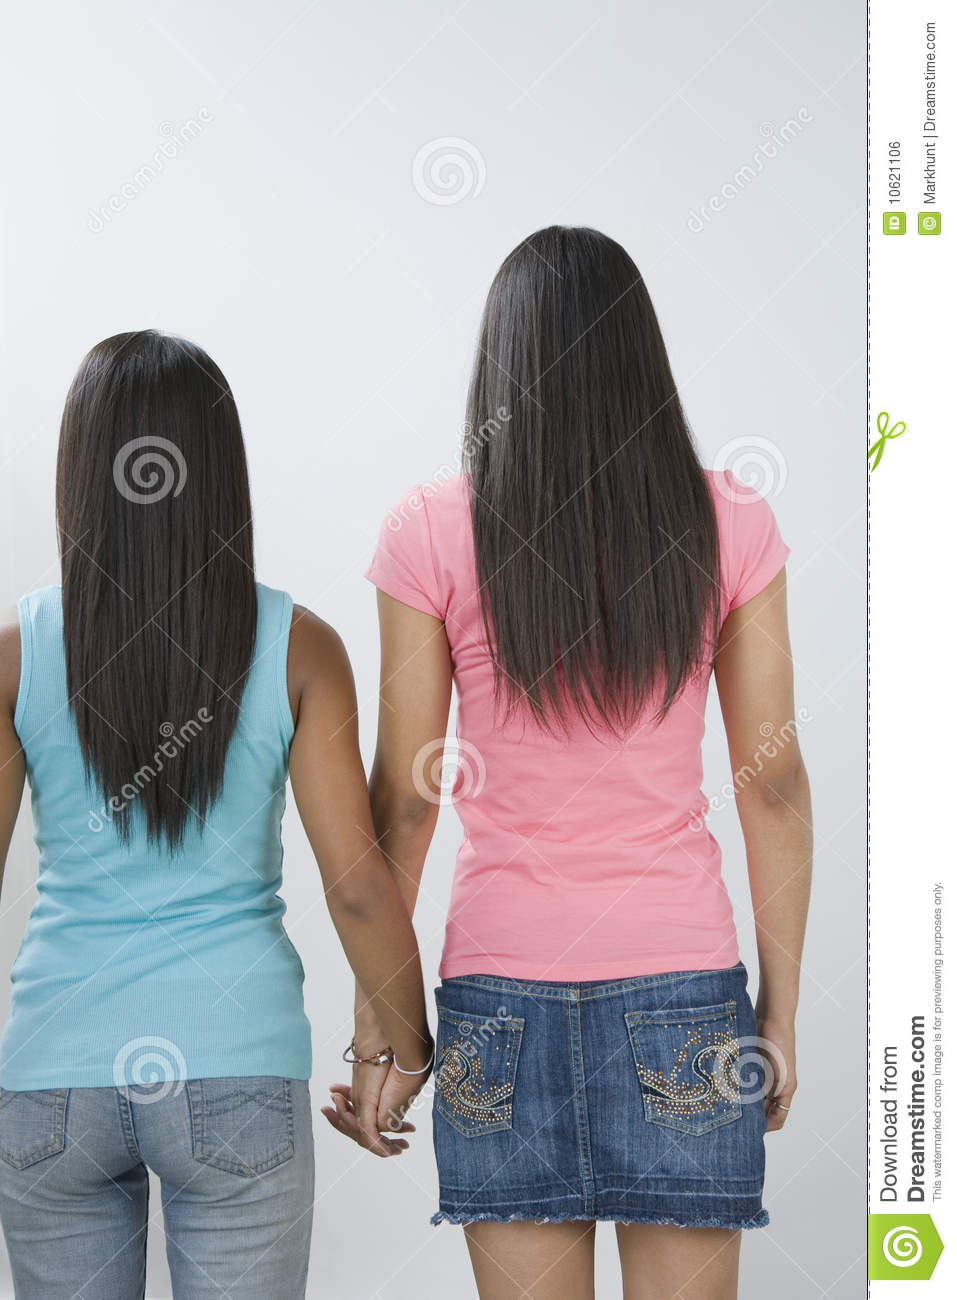 Two Teen Girls Holding Hands. Stock Photo - Image: 10621106